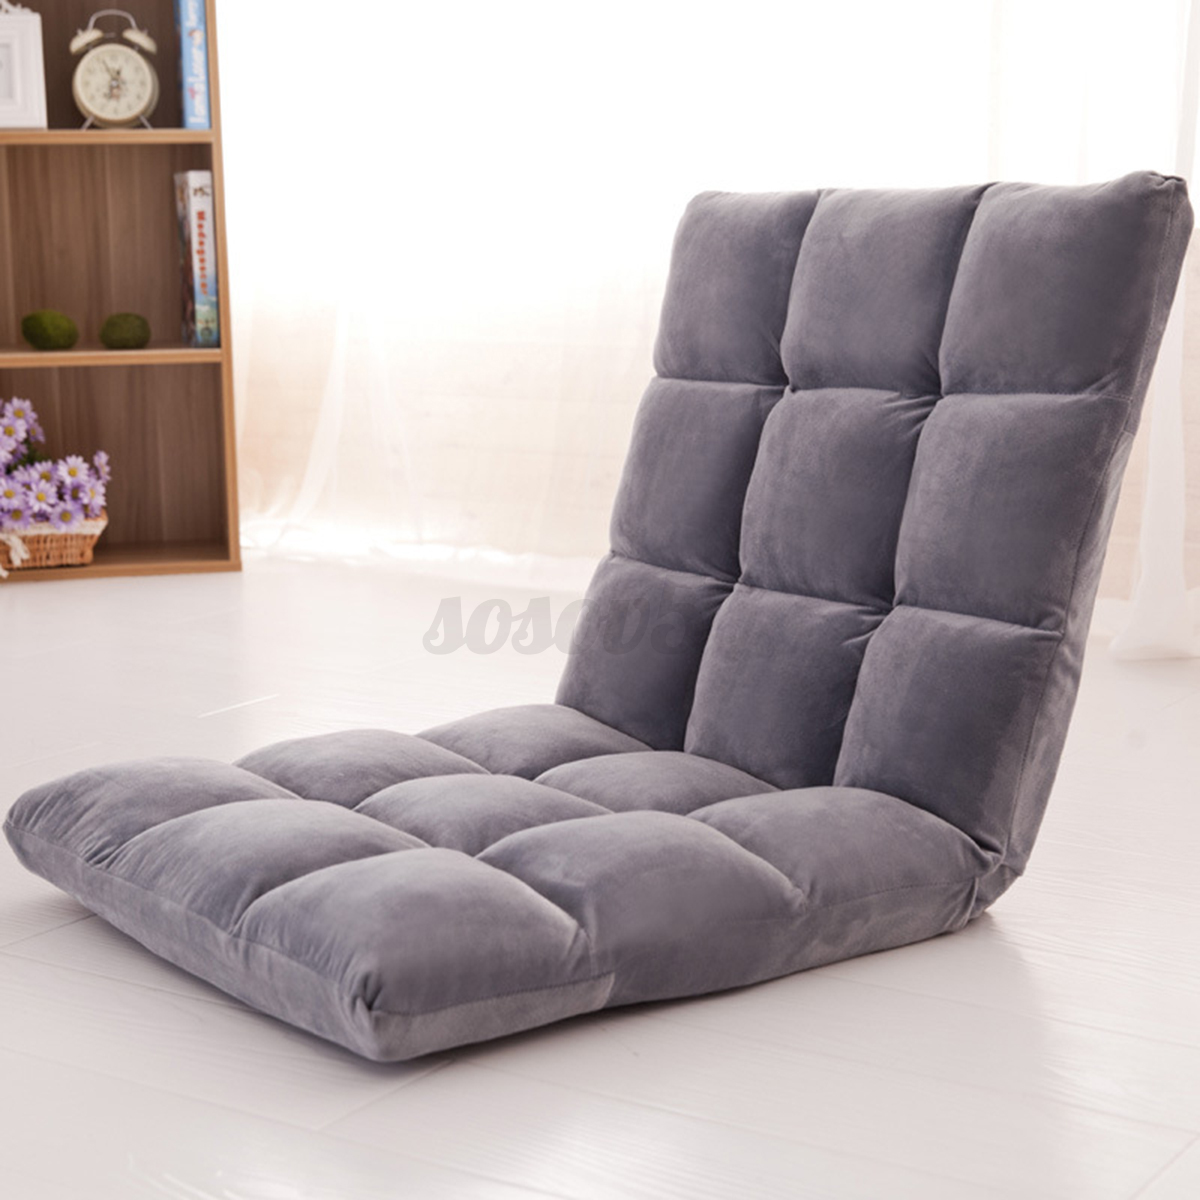 folding gaming chair adjustable lounger sofa lazy home garden seat recliner